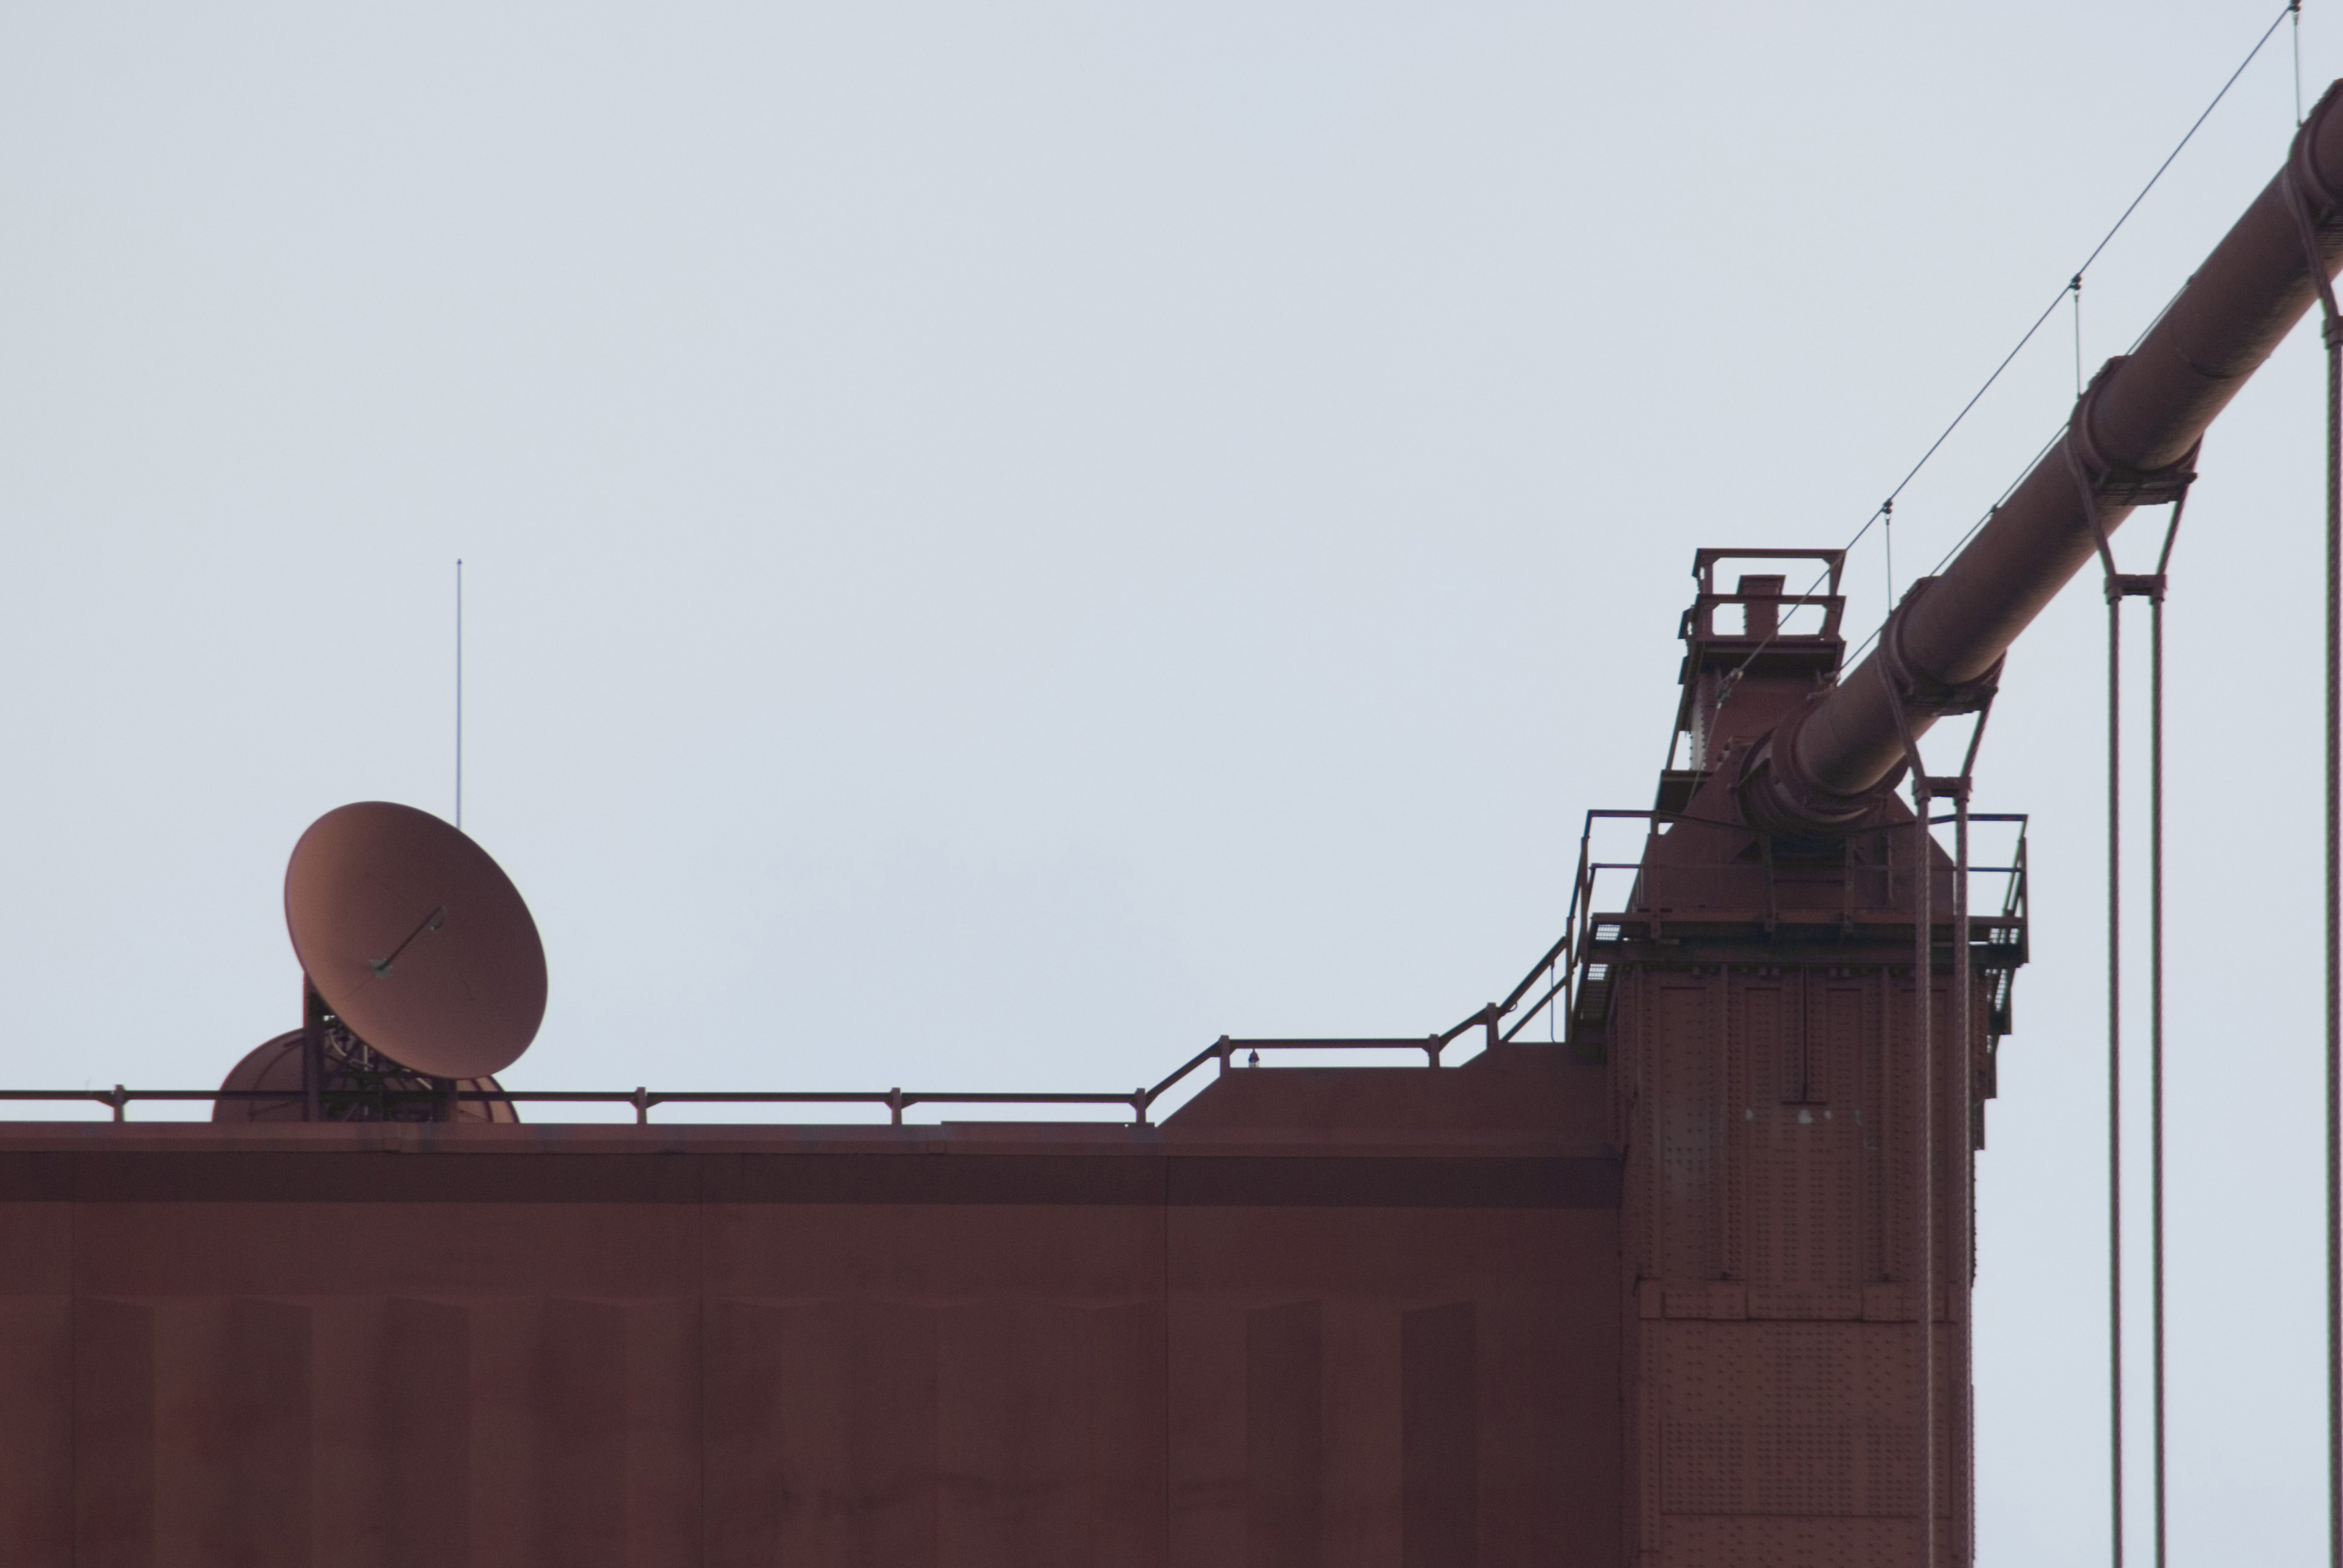 looking up at the south tower, golden gate bridge,the microwave communications dishes placed on the structure are painted the match the colour of the bridge instead of the usual white colour - why are they normally coloured white?